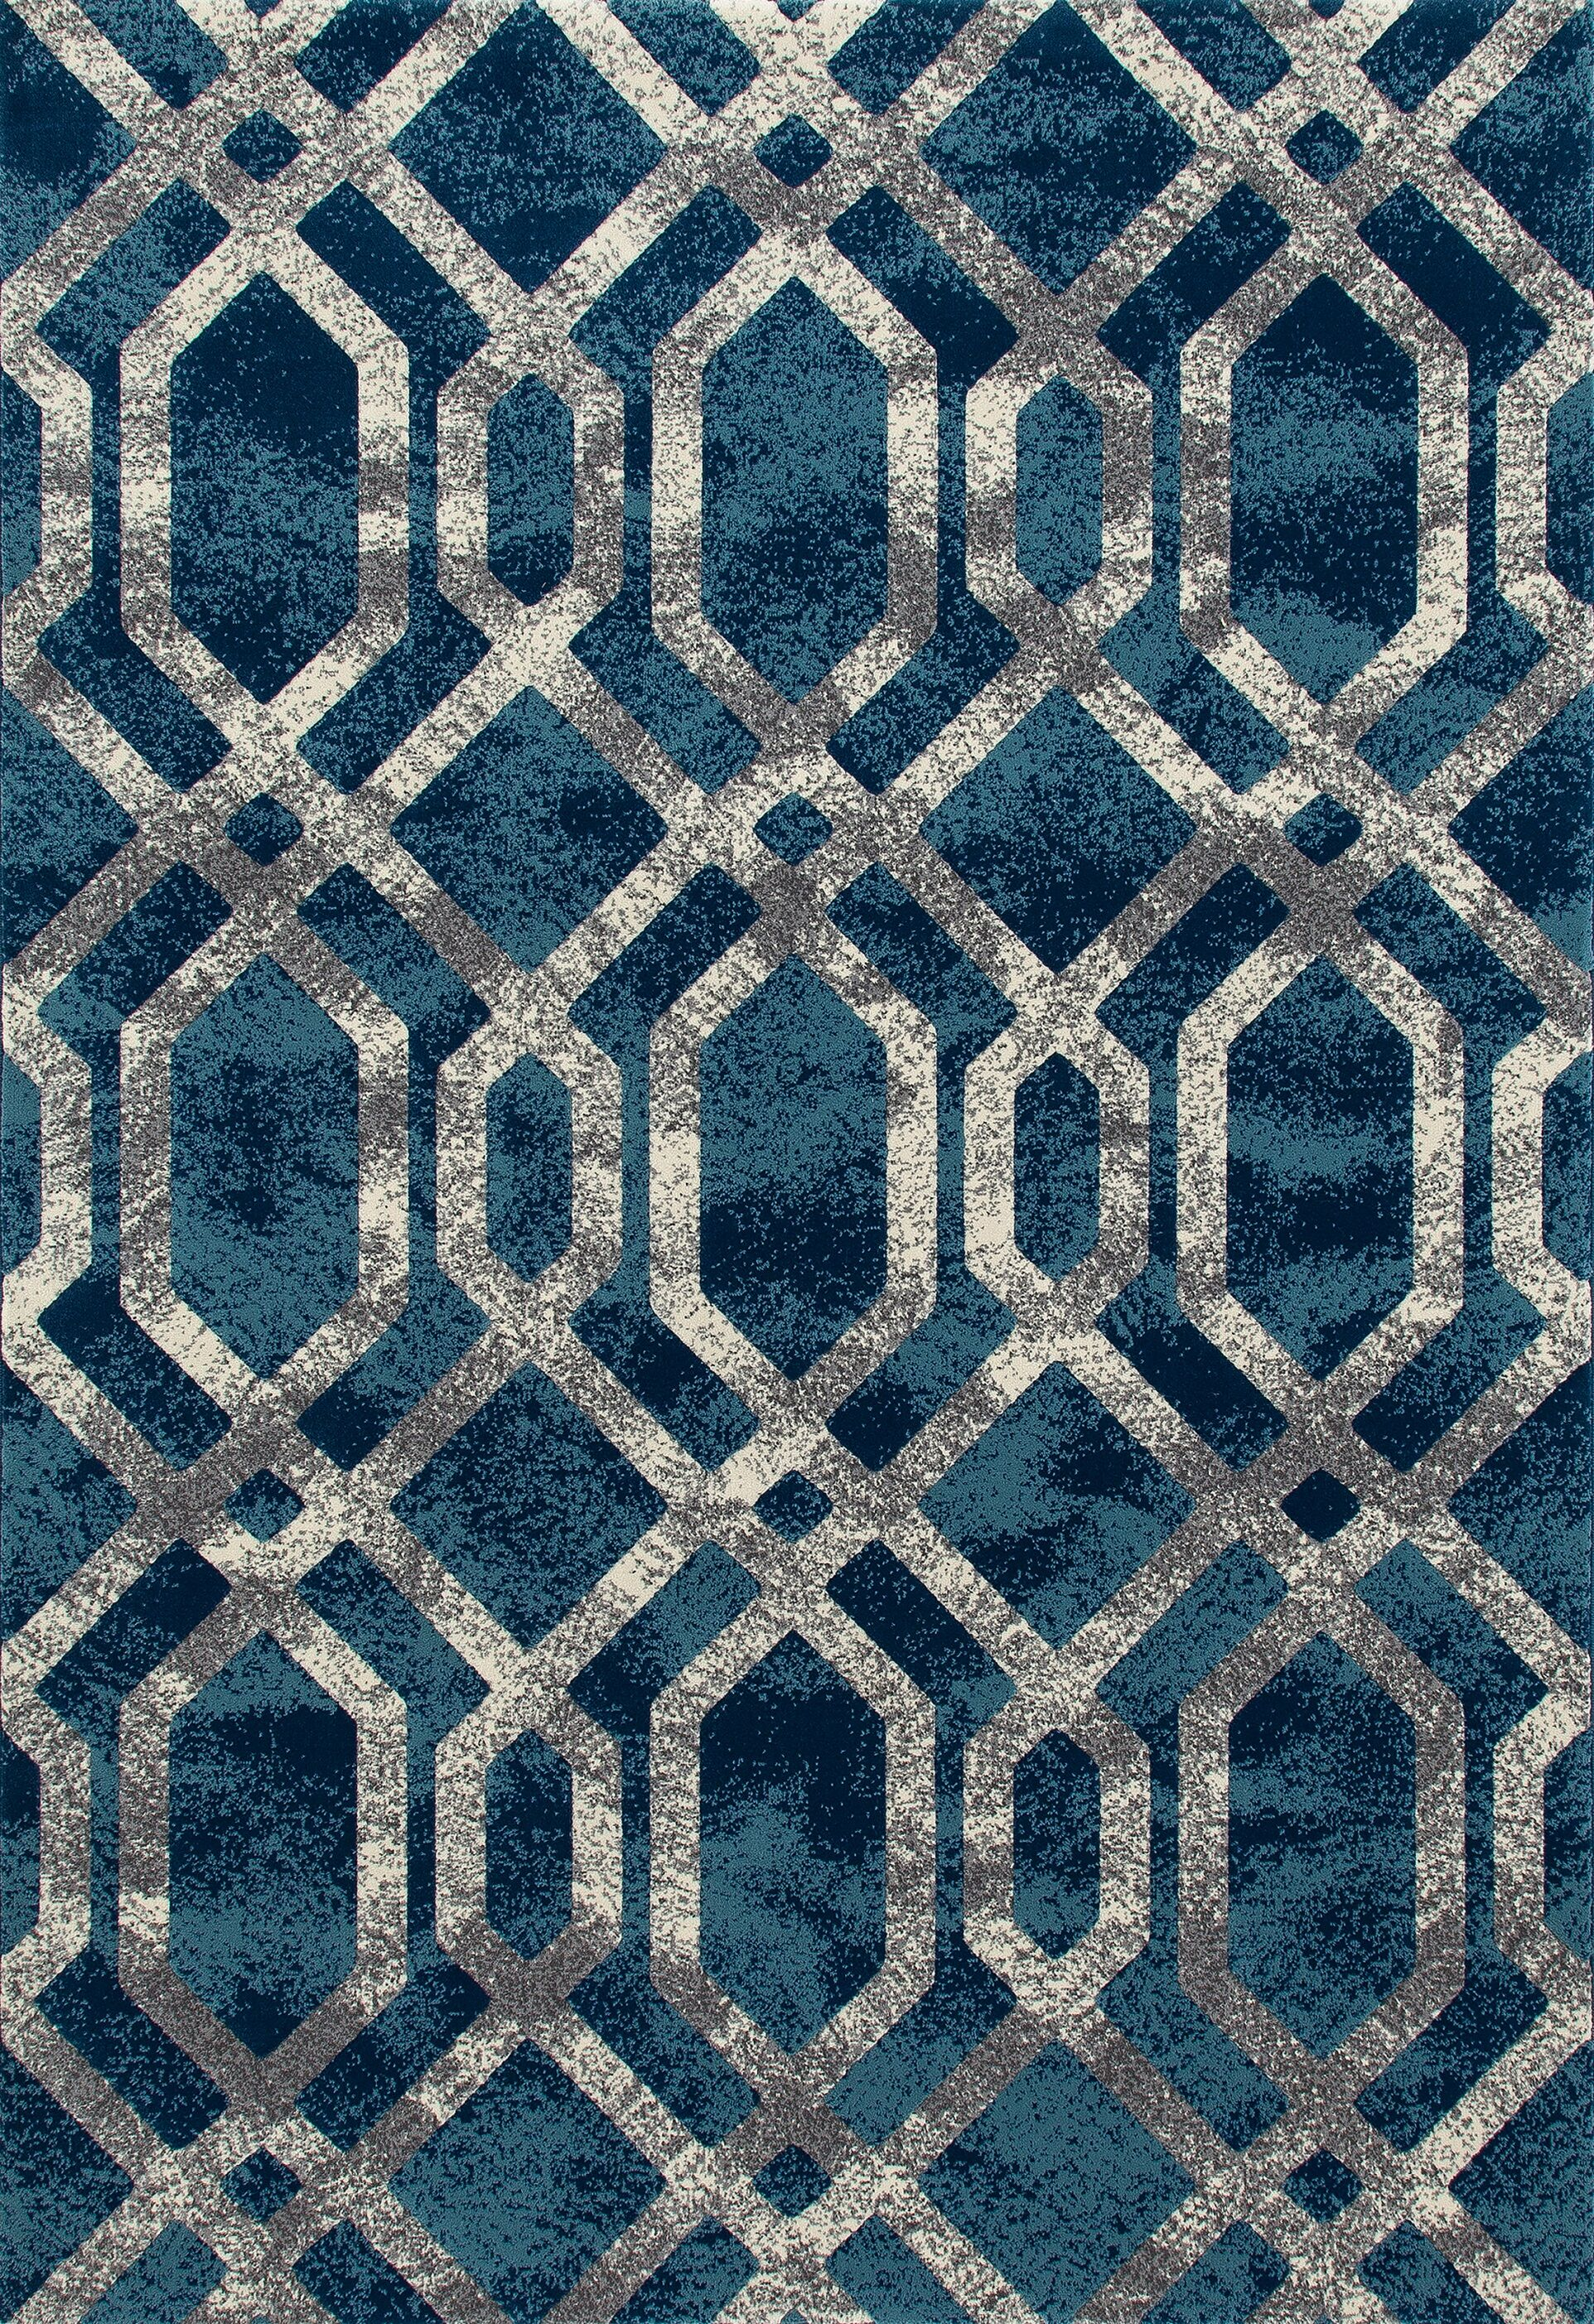 Delanie Blue And Silver Area Rug Rug Size: 3'11 x 5'11